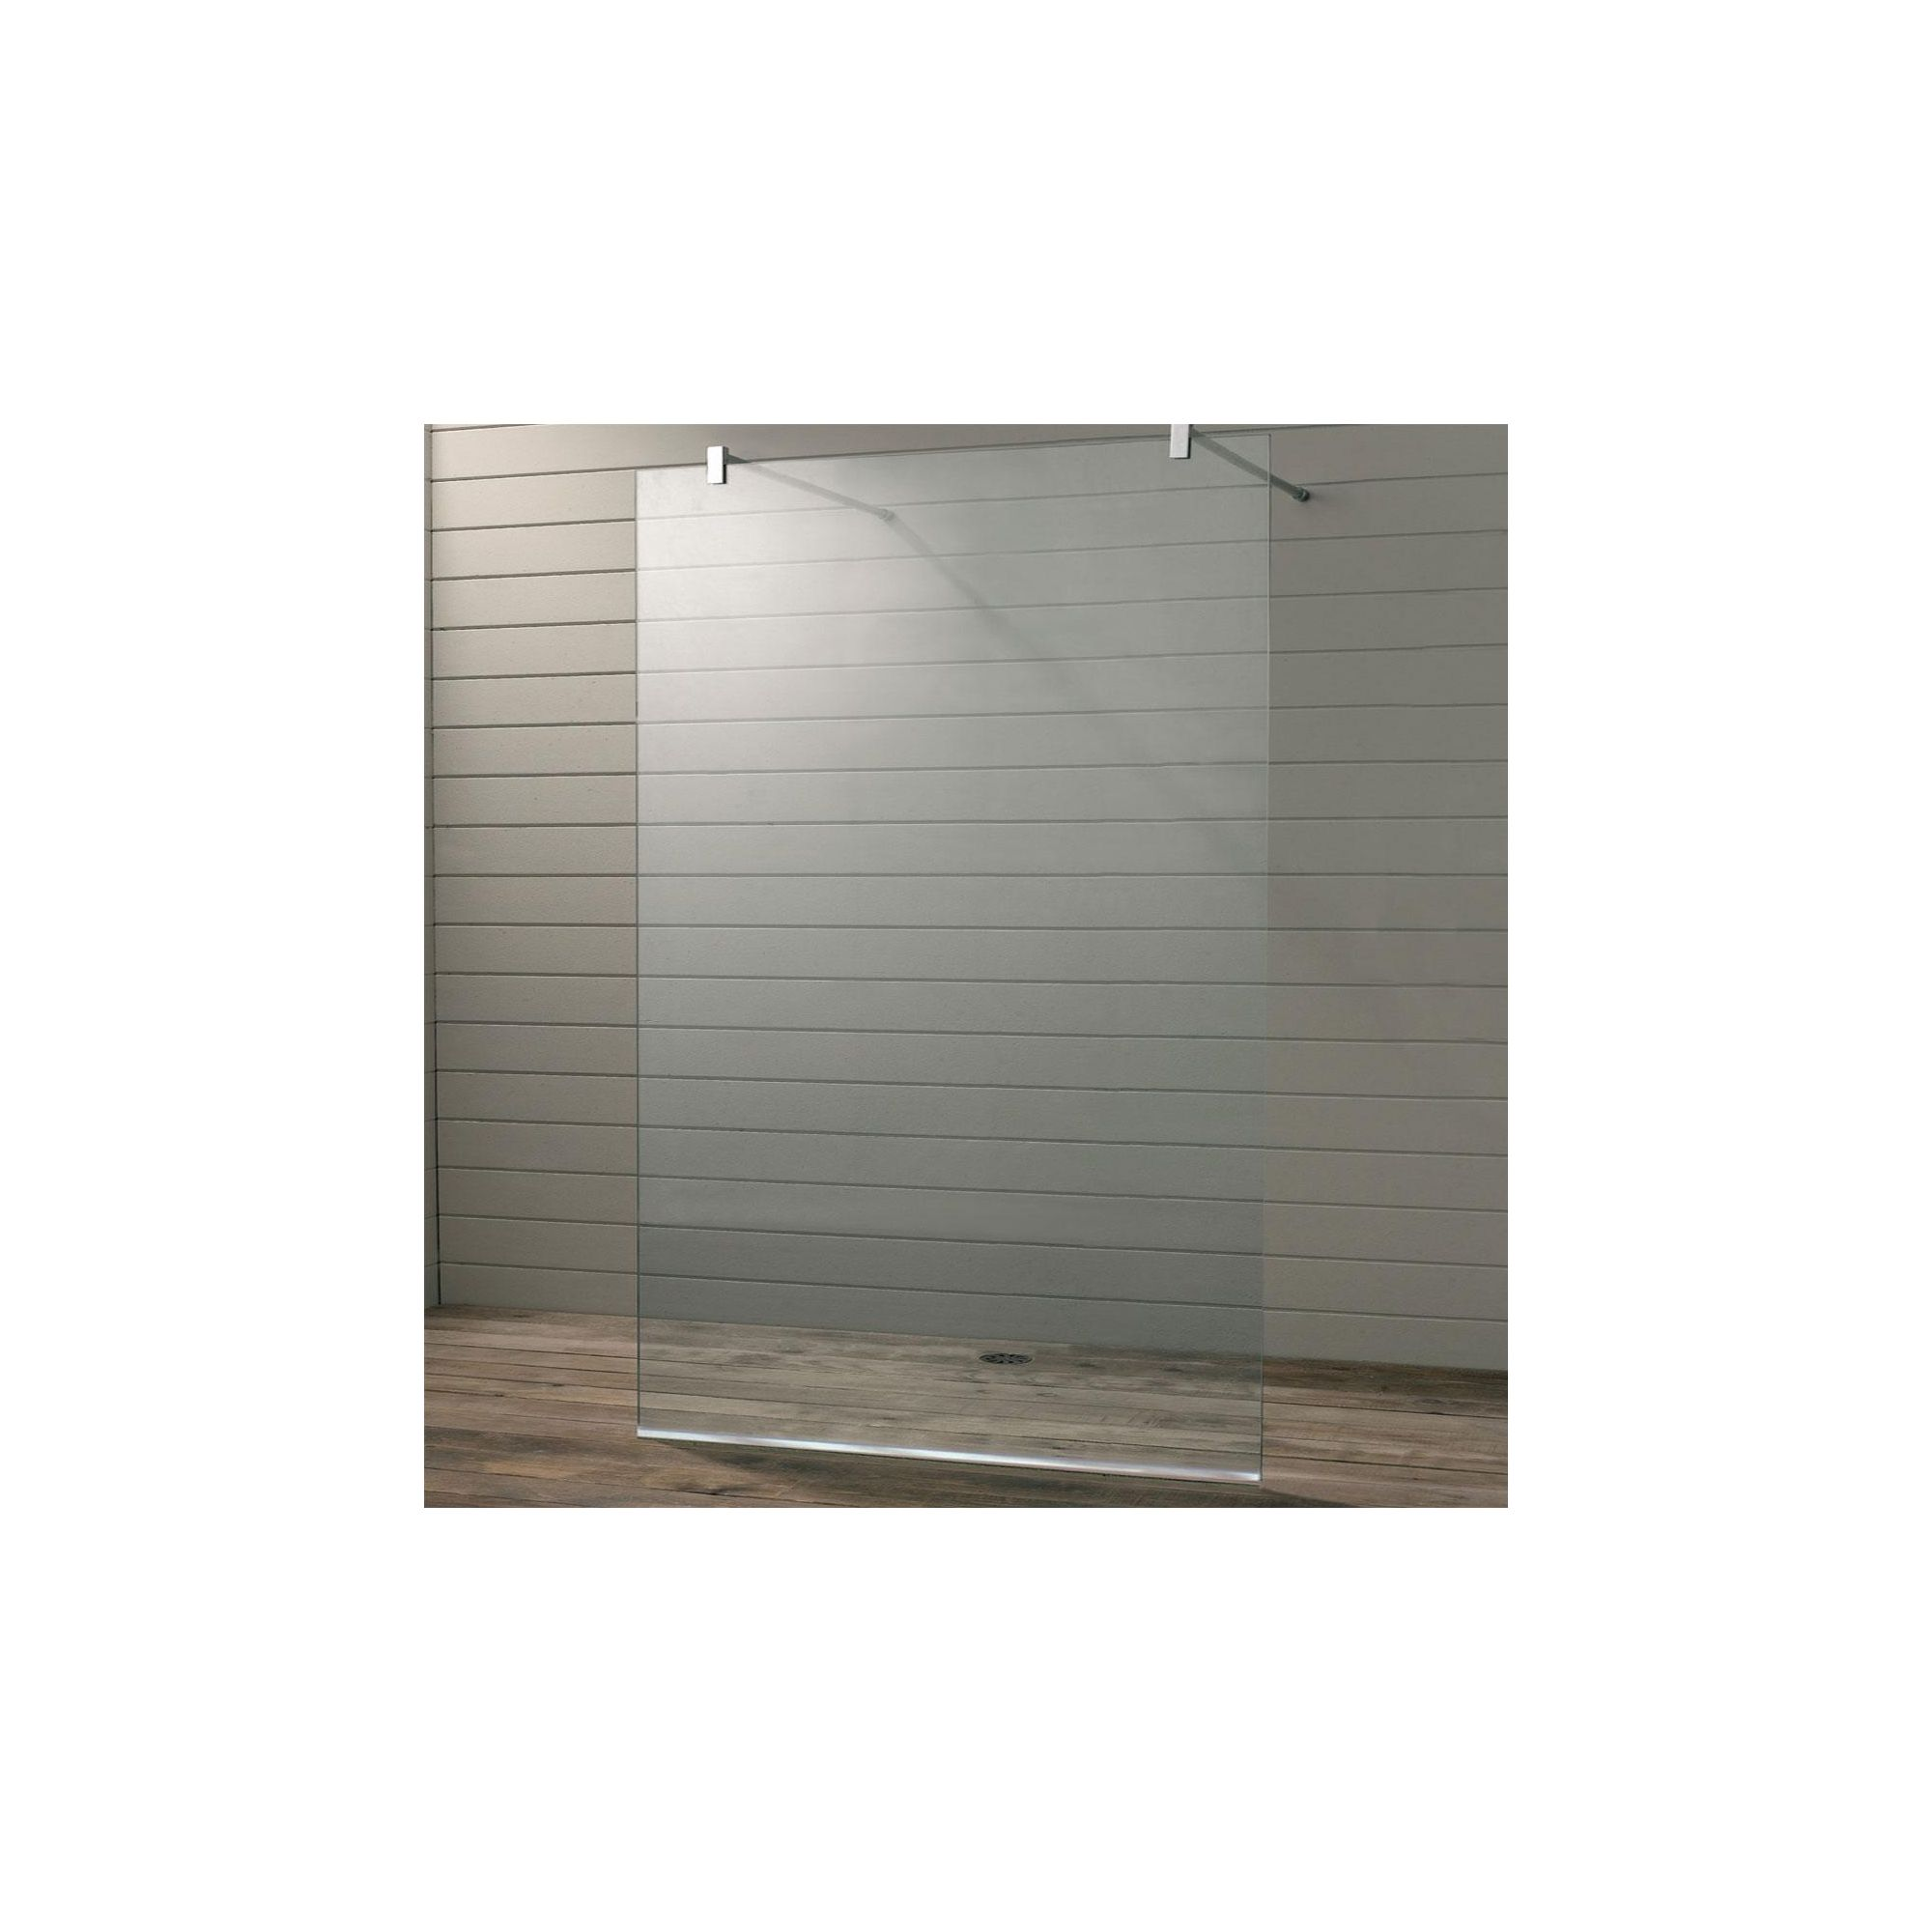 Duchy Premium Wet Room Glass Shower Panel, 1100mm x 800mm, 10mm Glass, Low Profile Tray at Tesco Direct